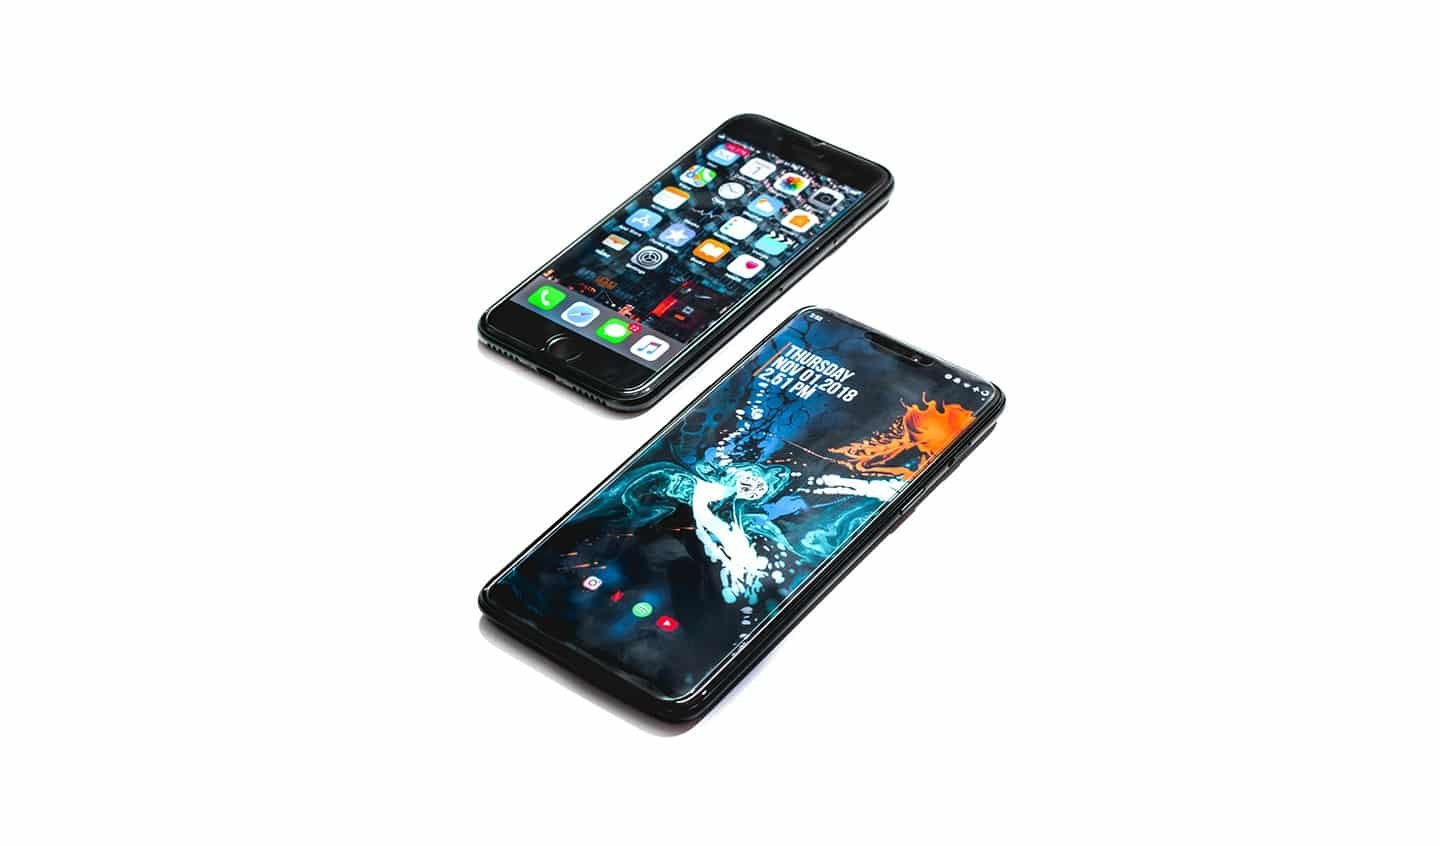 iPhone 8 and Samsung S9 with native mobile applications and hybrid mobile applications